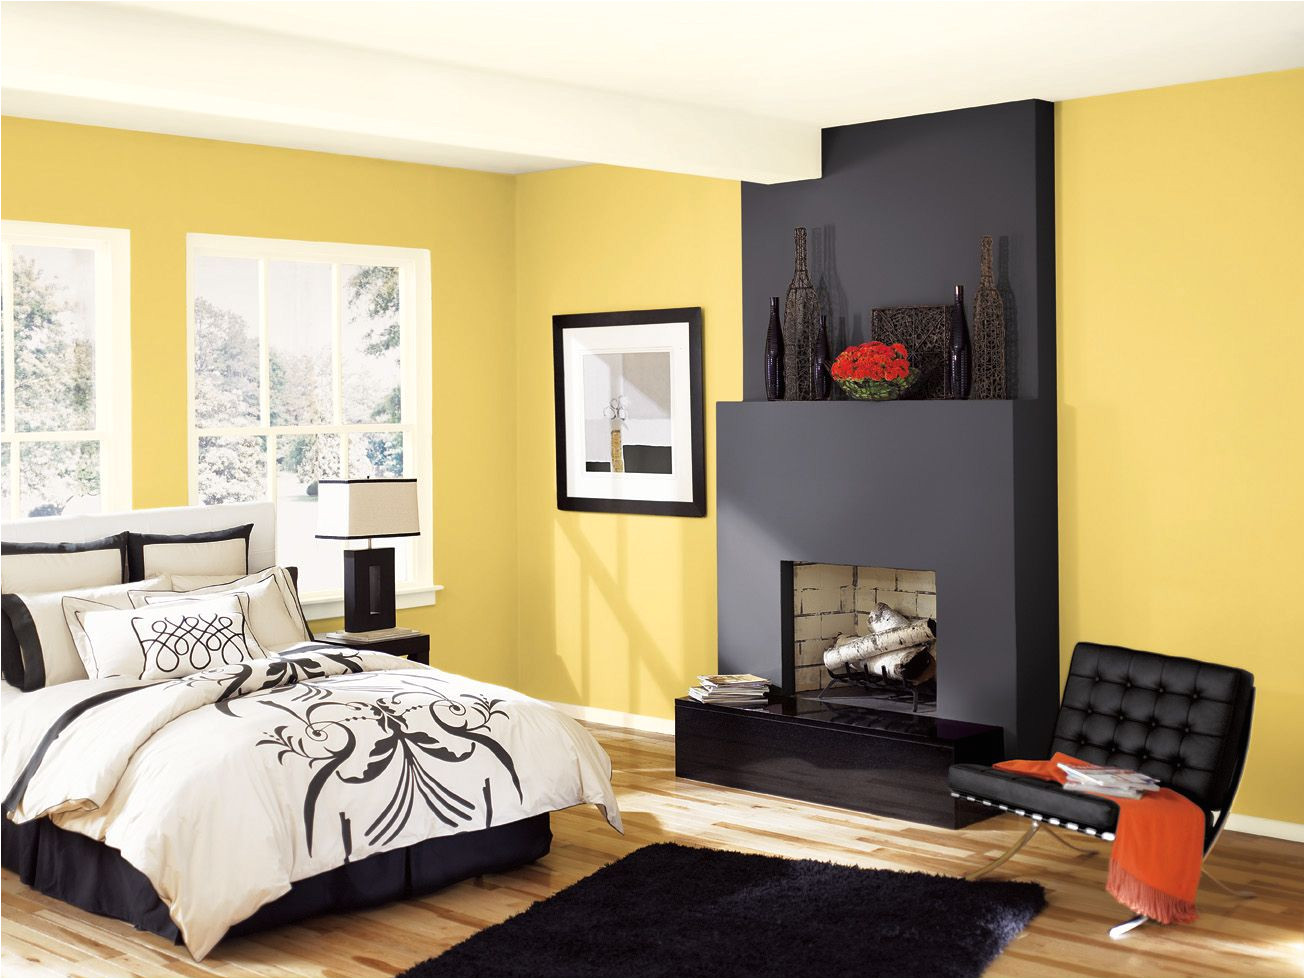 this color w black cabinets benjamin moore hc 11 marblehead gold 2116 30 cabernet 968 dune white